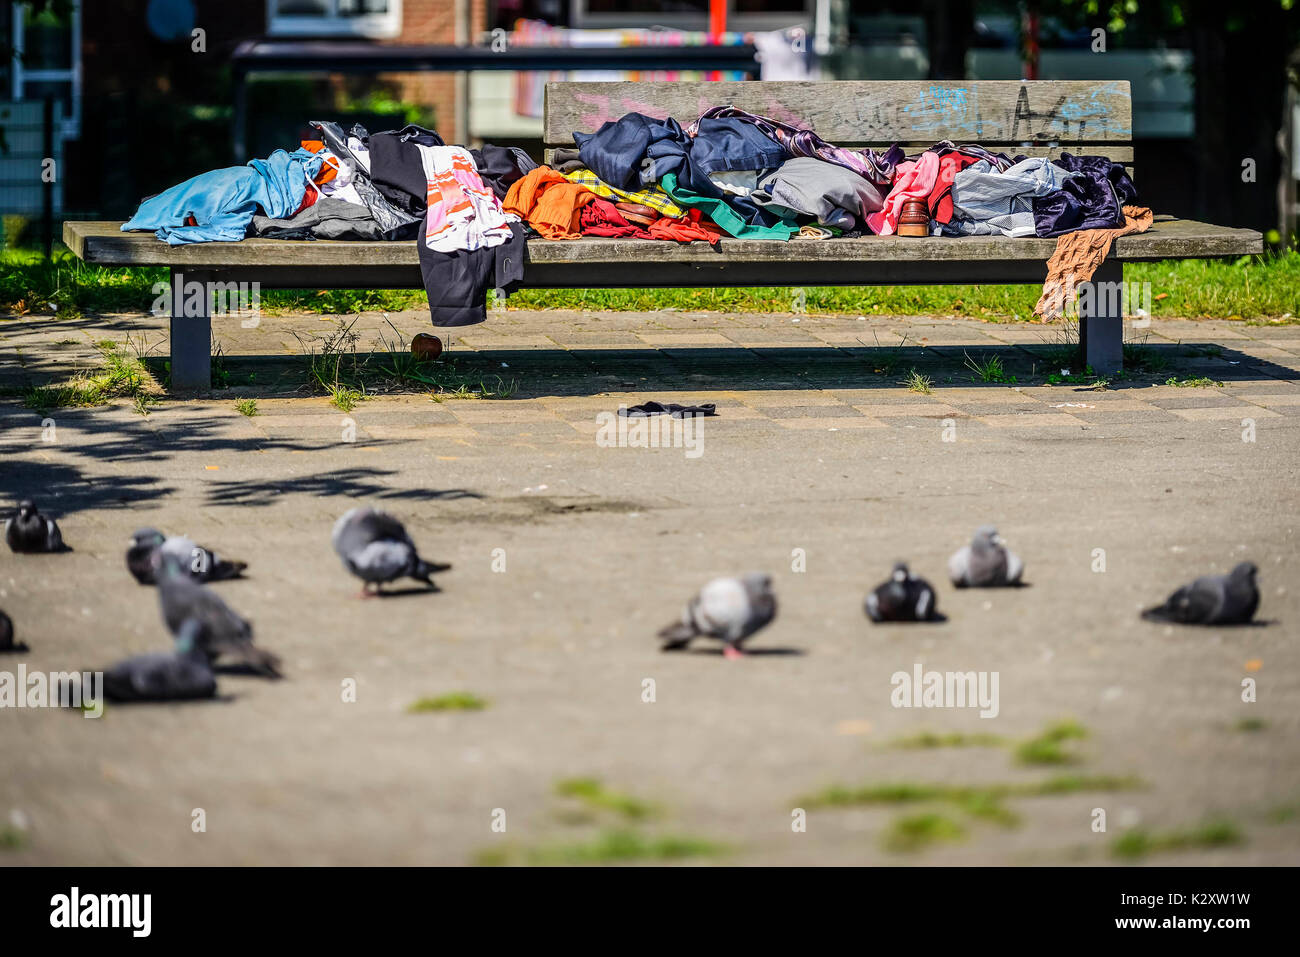 Bench with clothes in the Mueggenburger port of entry in Veddel, Hamburg, Germany, Europe, Sitzbank mit Kleidung am Mueggenburger Zollhafen in Veddel, - Stock Image